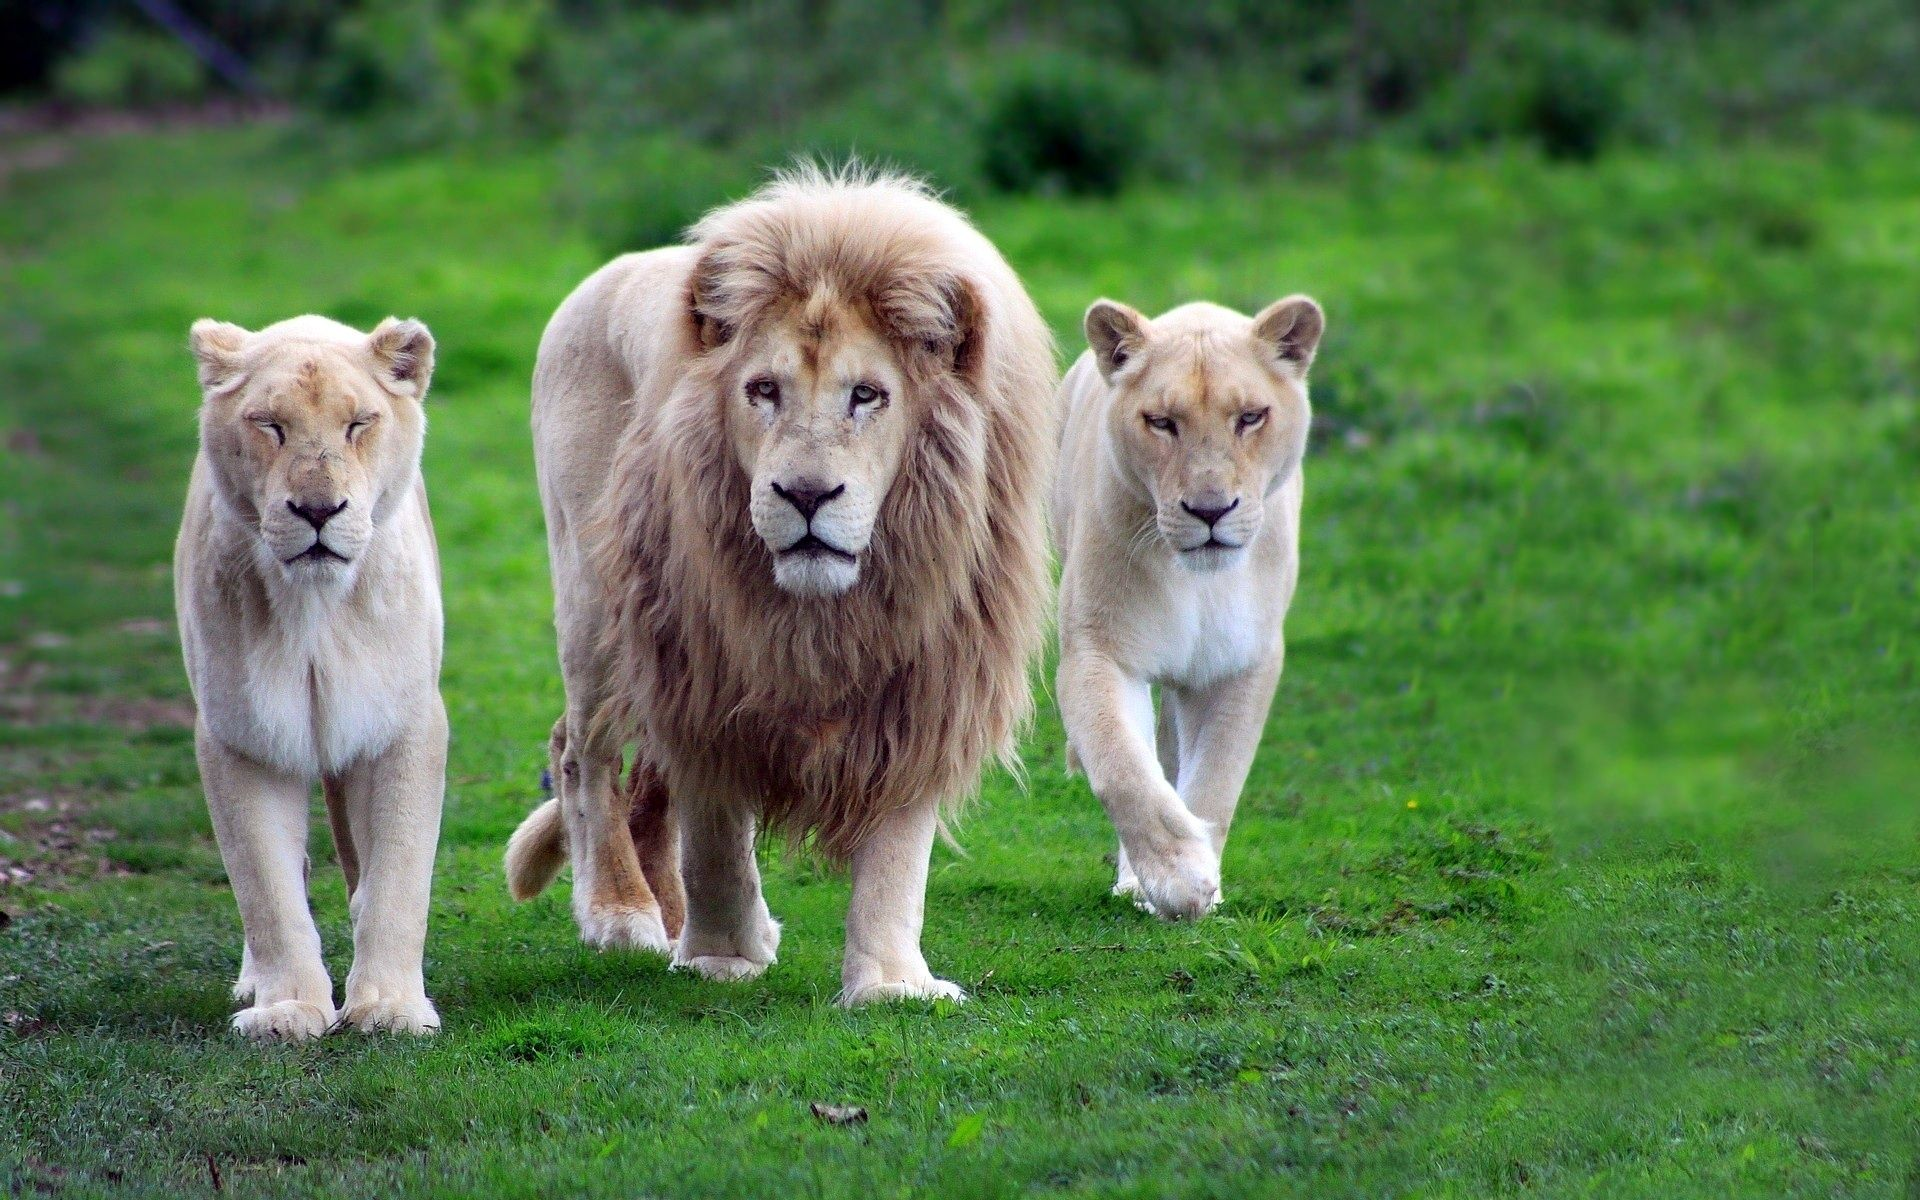 Best Wallpaper Horse Lion - 7d6ace653d02bc89edca38884a552f36  Perfect Image Reference_21393.jpg